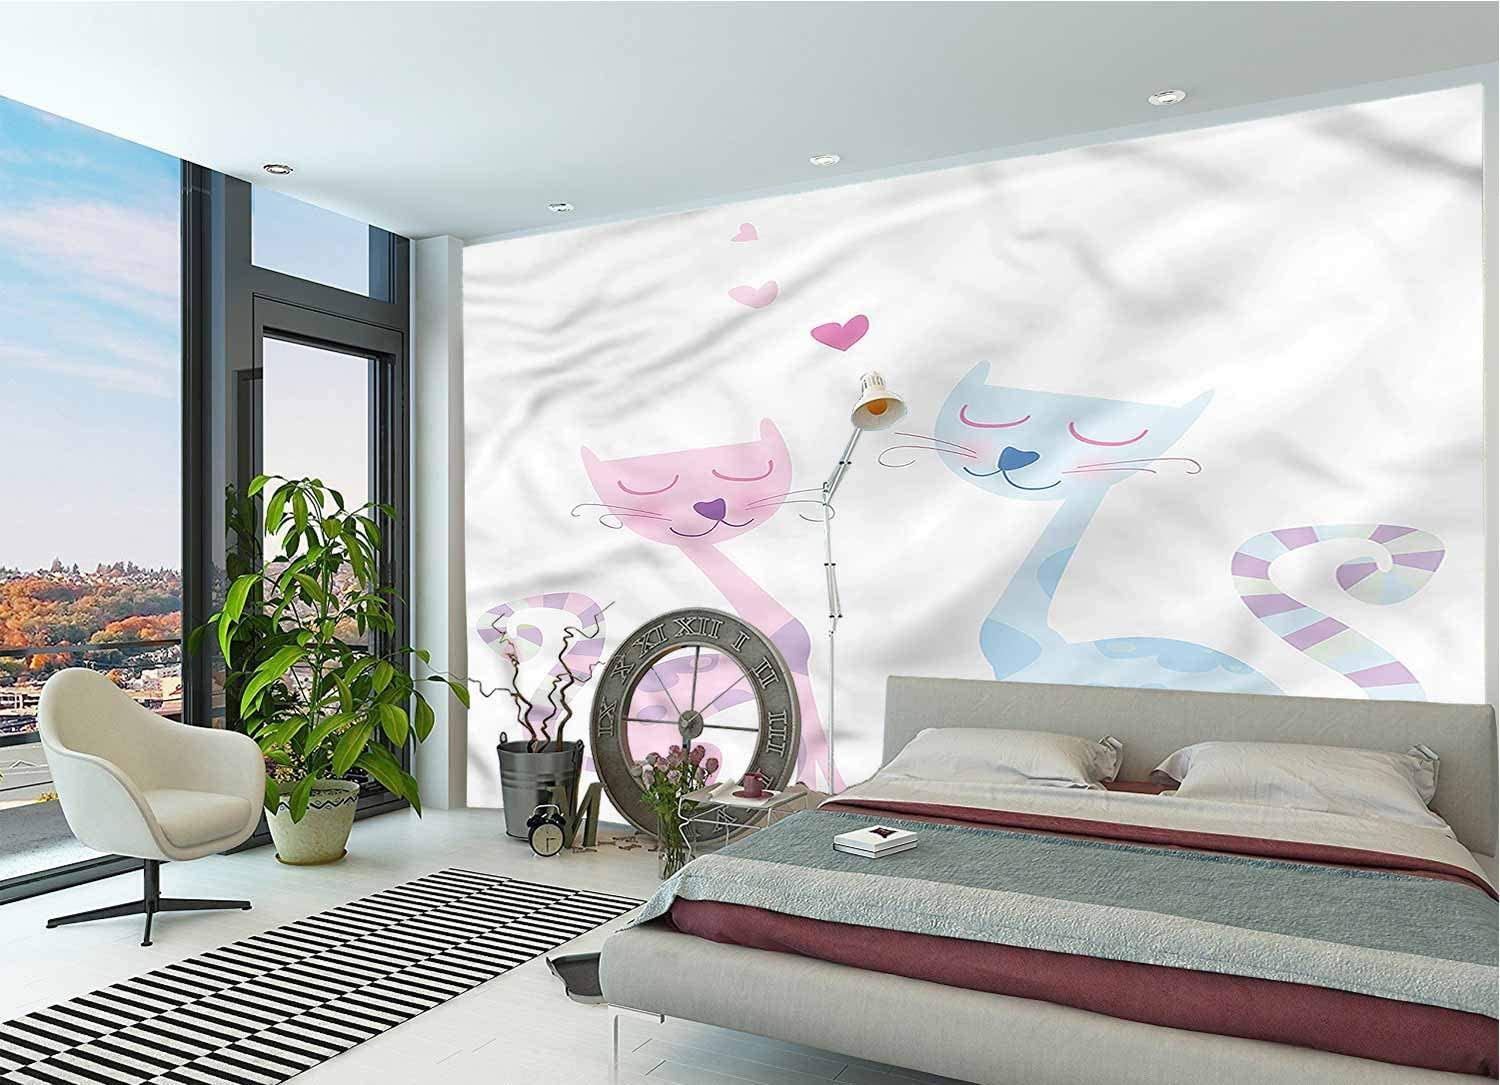 LCGGDB Cat Large Wall Mural,Valentines Day Feline in Love Removable Large Sticker Foil Wall Decor for Office Kids Bedroom Nursery Family Decor-96x66 Inch